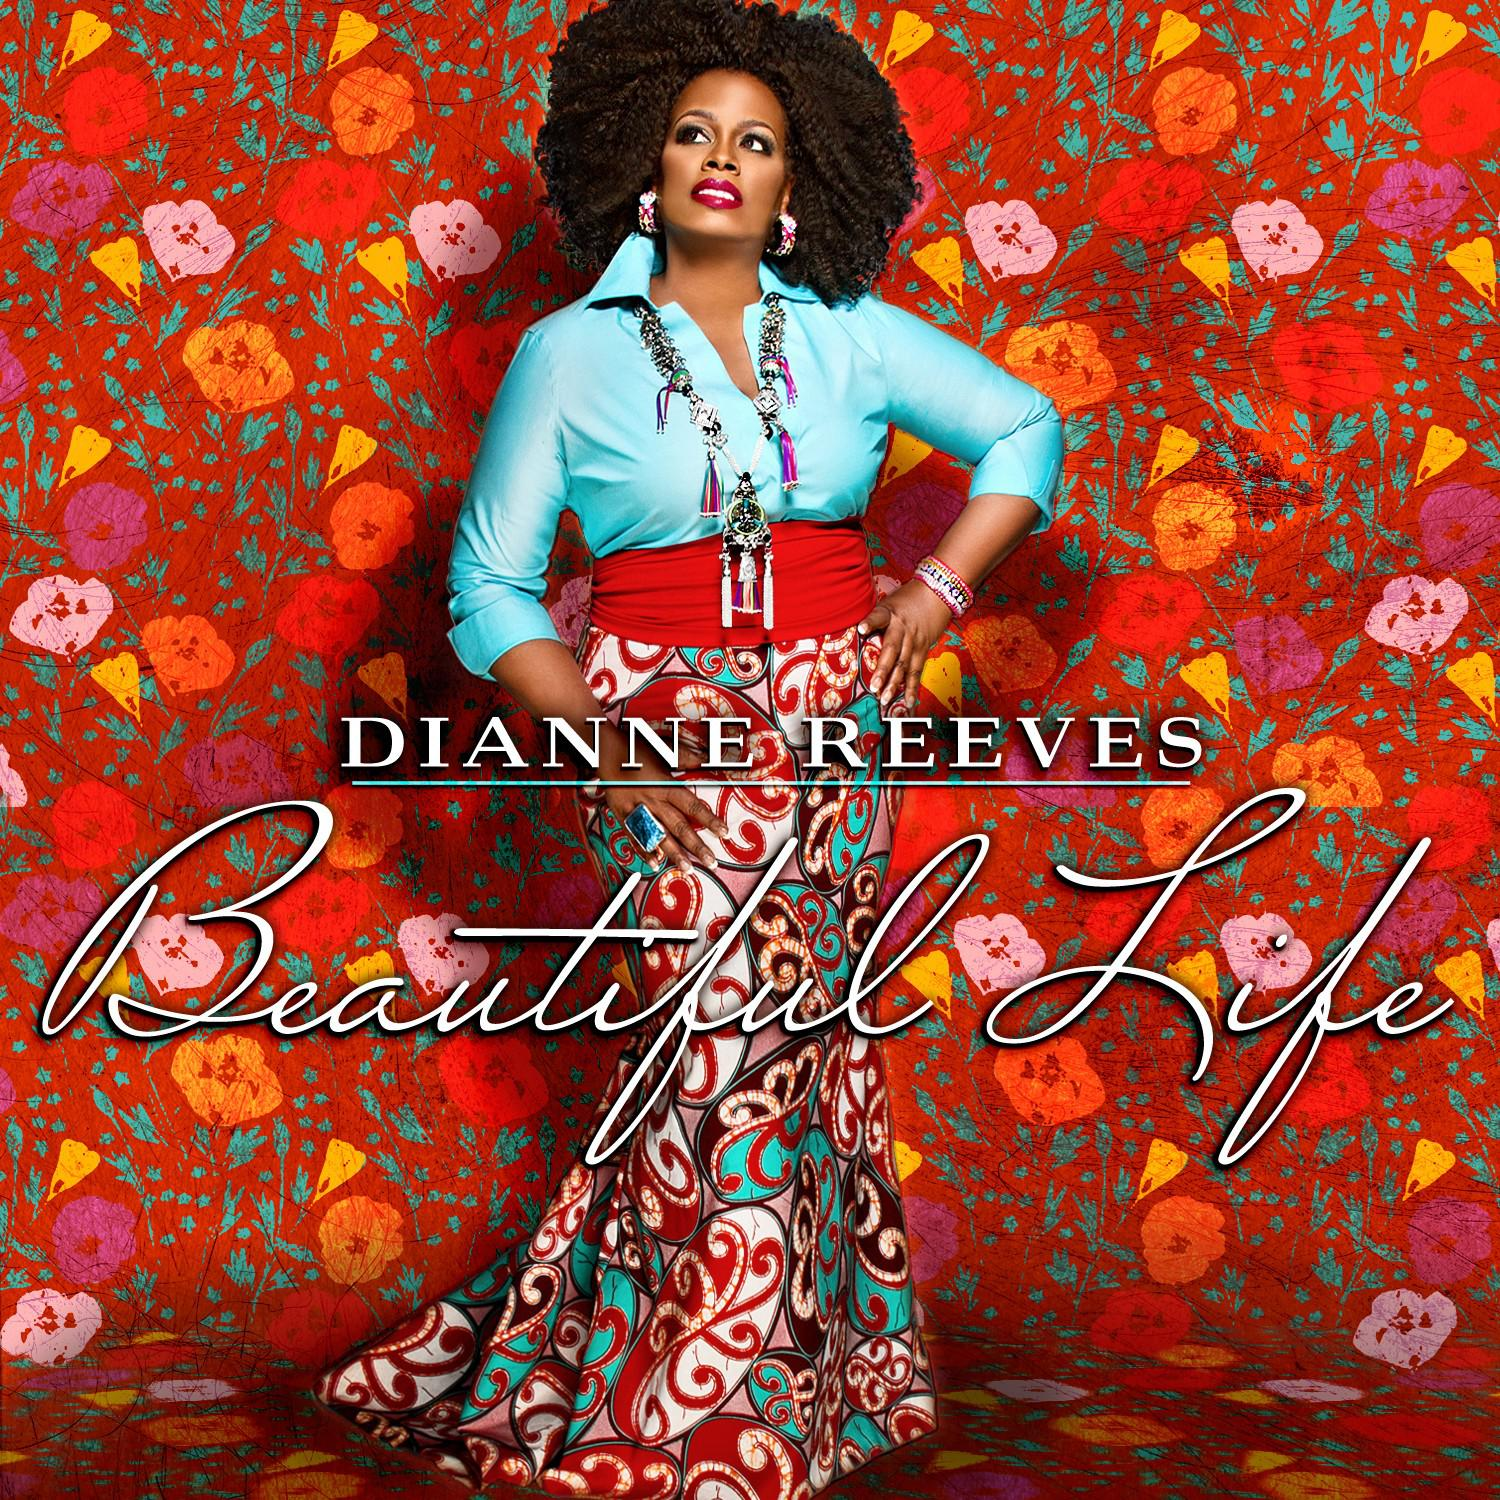 Dianne Reeves - Beautiful Life [MULTI]